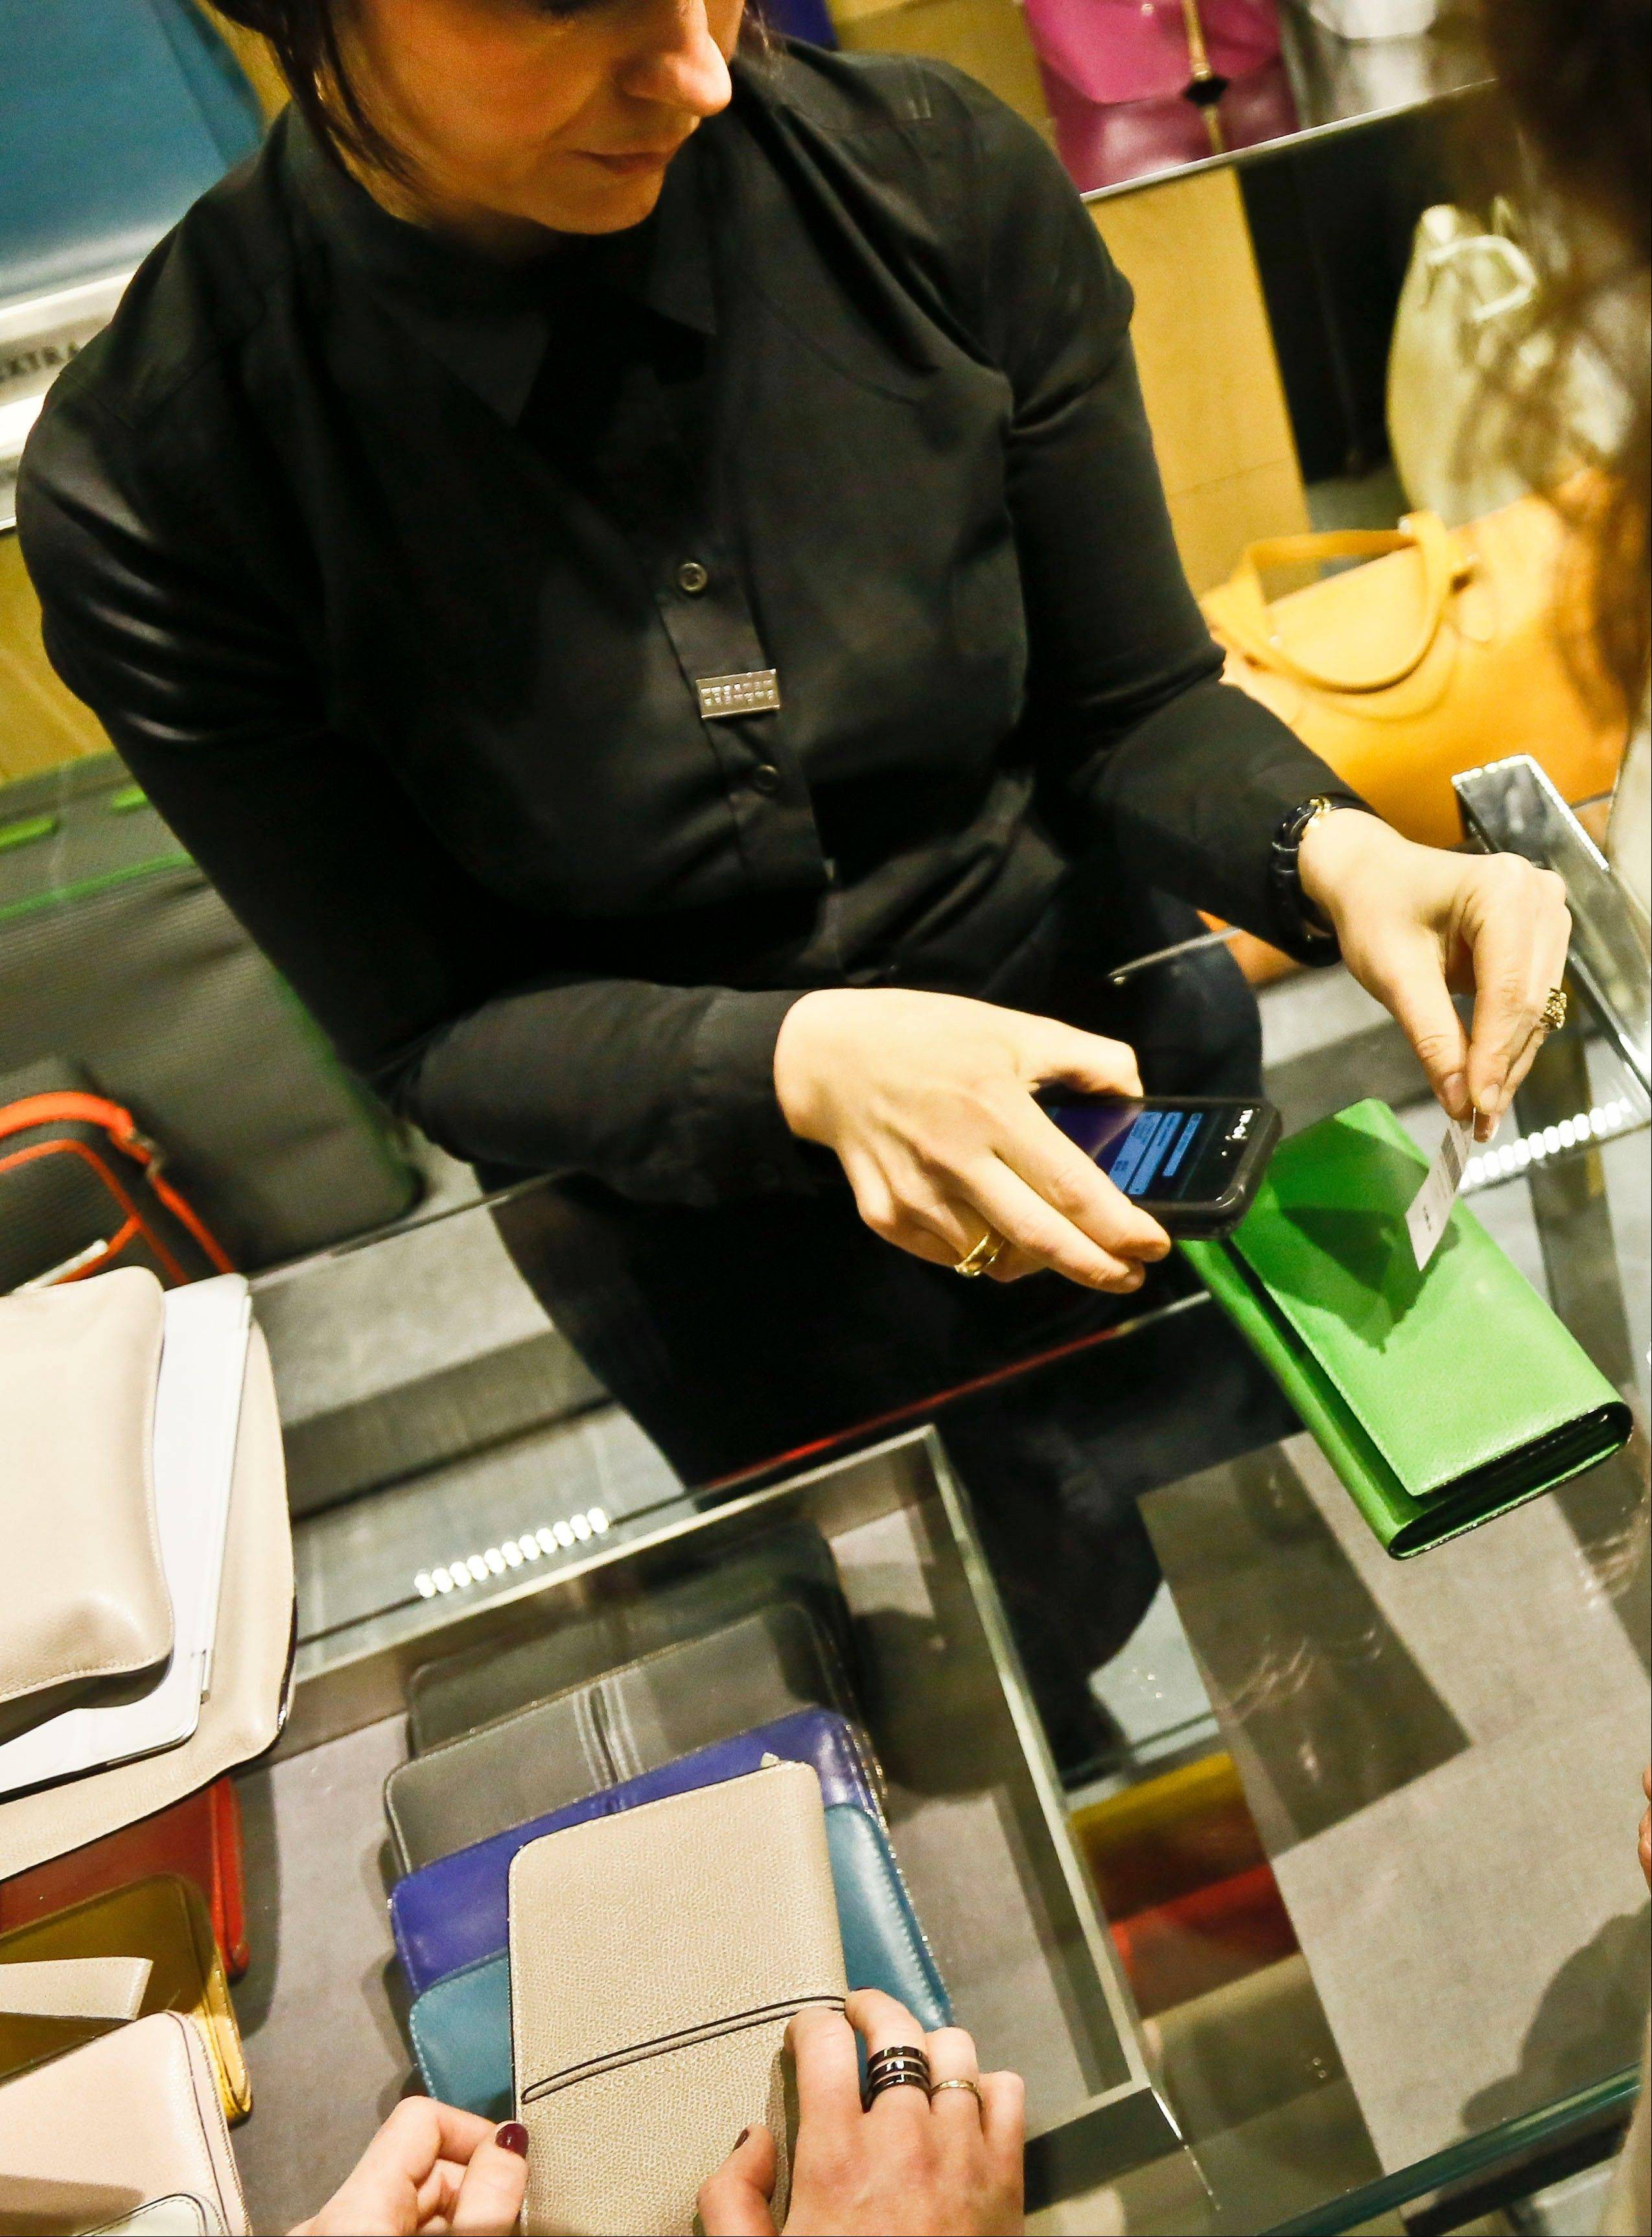 Loyalty programs are moving out of wallets and into smartphones as a new generation of applications seeks to reward consumers for shopping, watching television or snapping photos.